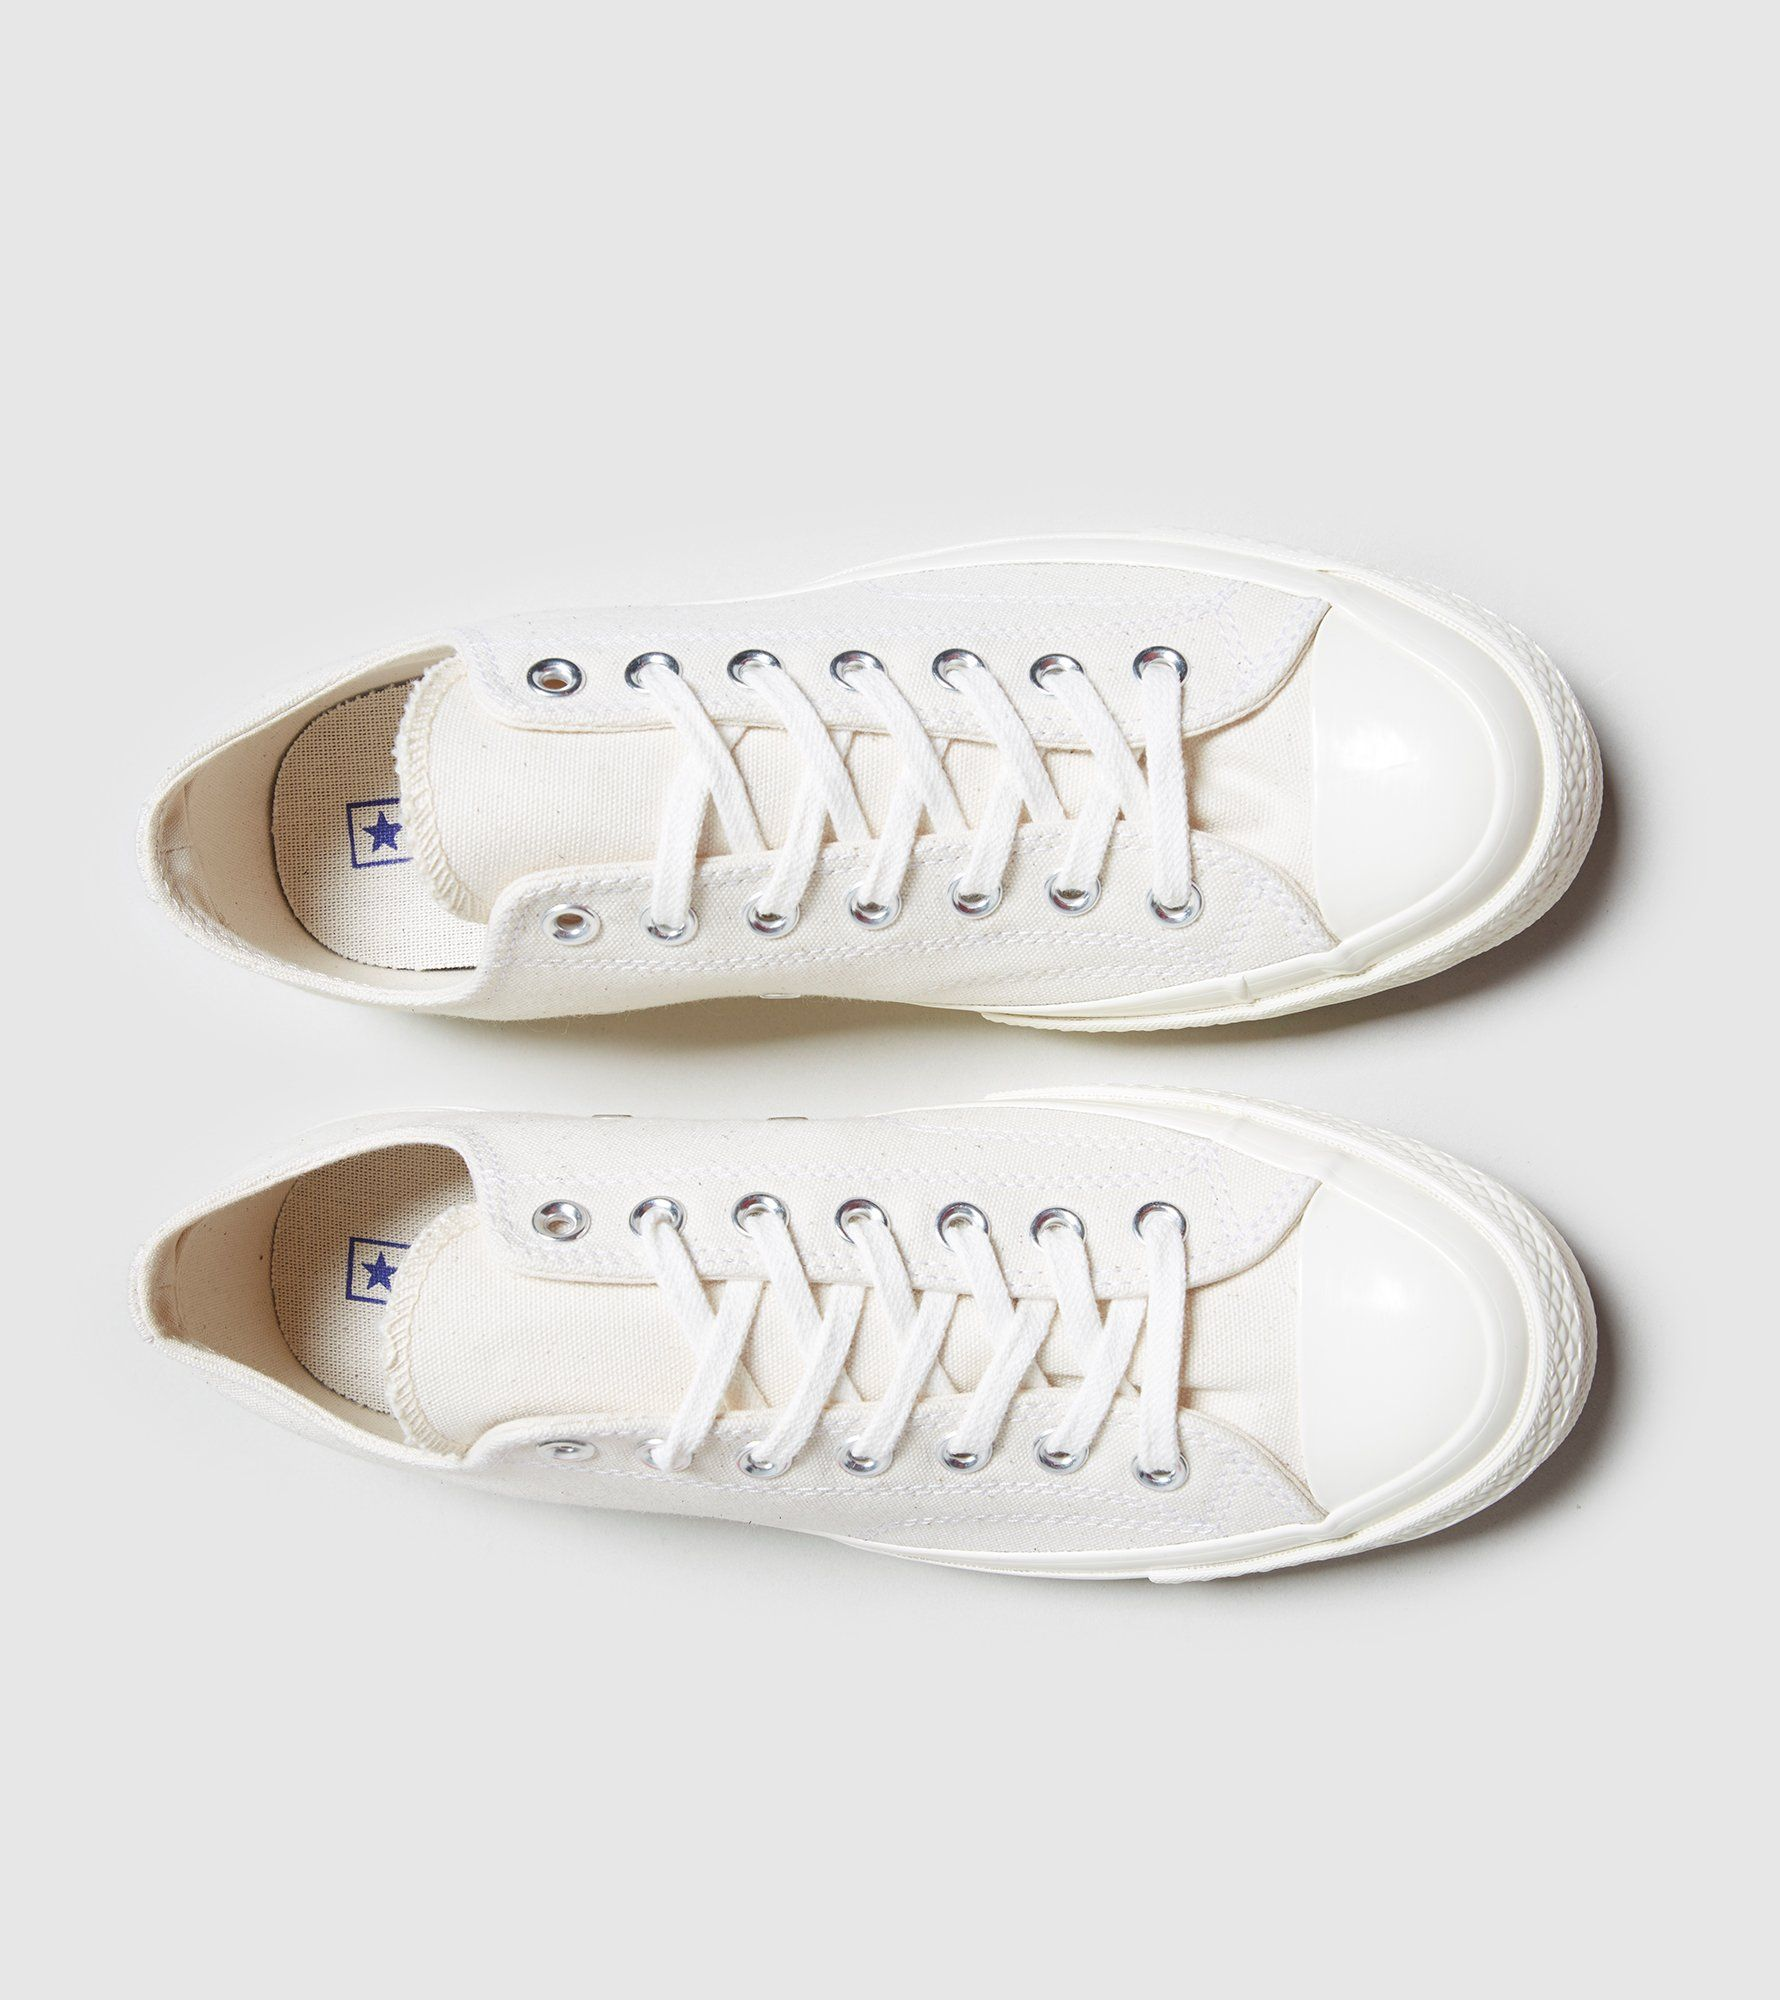 Converse Chuck Taylor All Star 70's Low